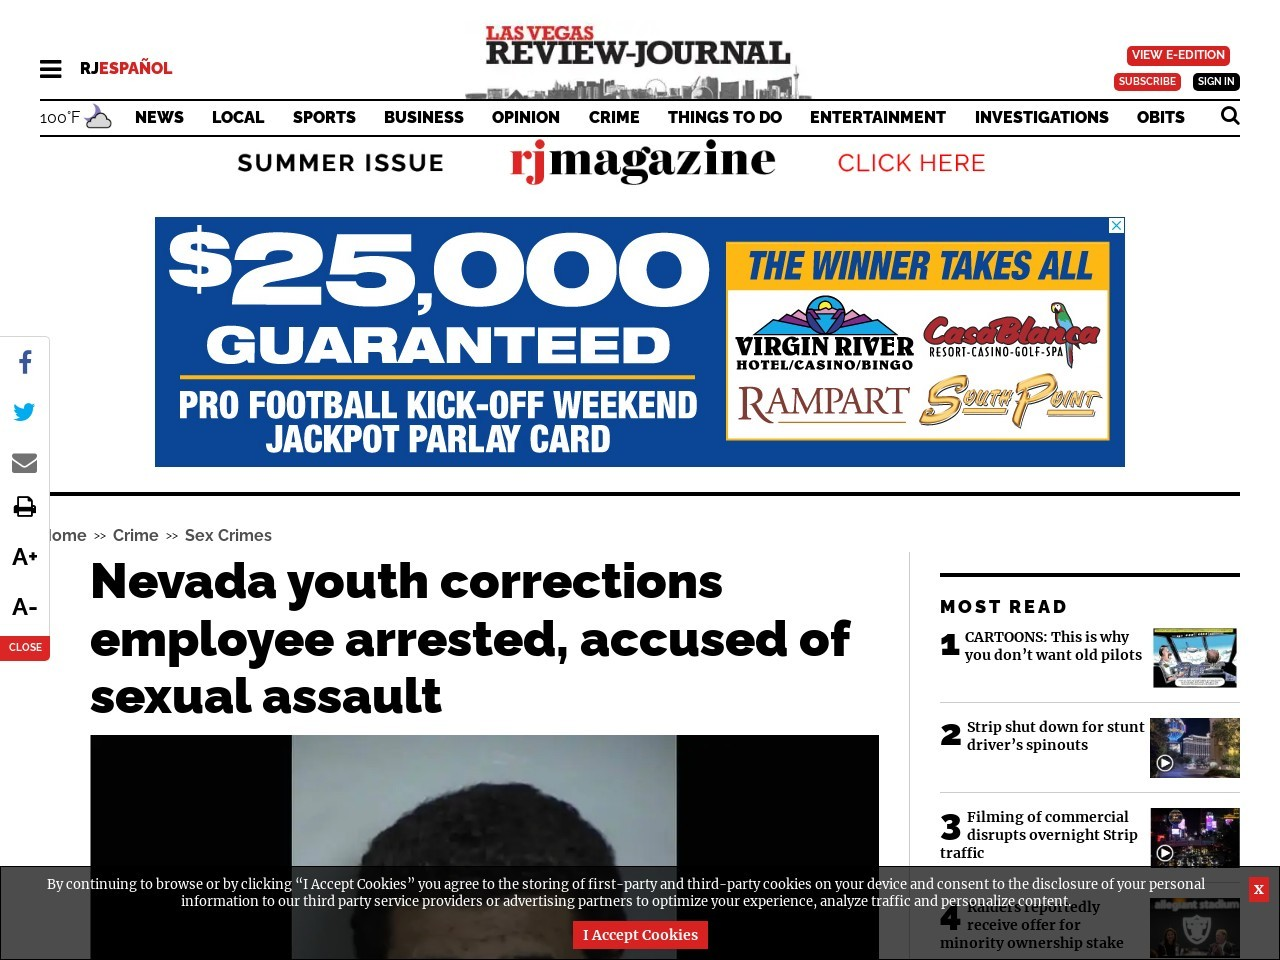 Nevada youth corrections employee arrested, accused of sexual assault